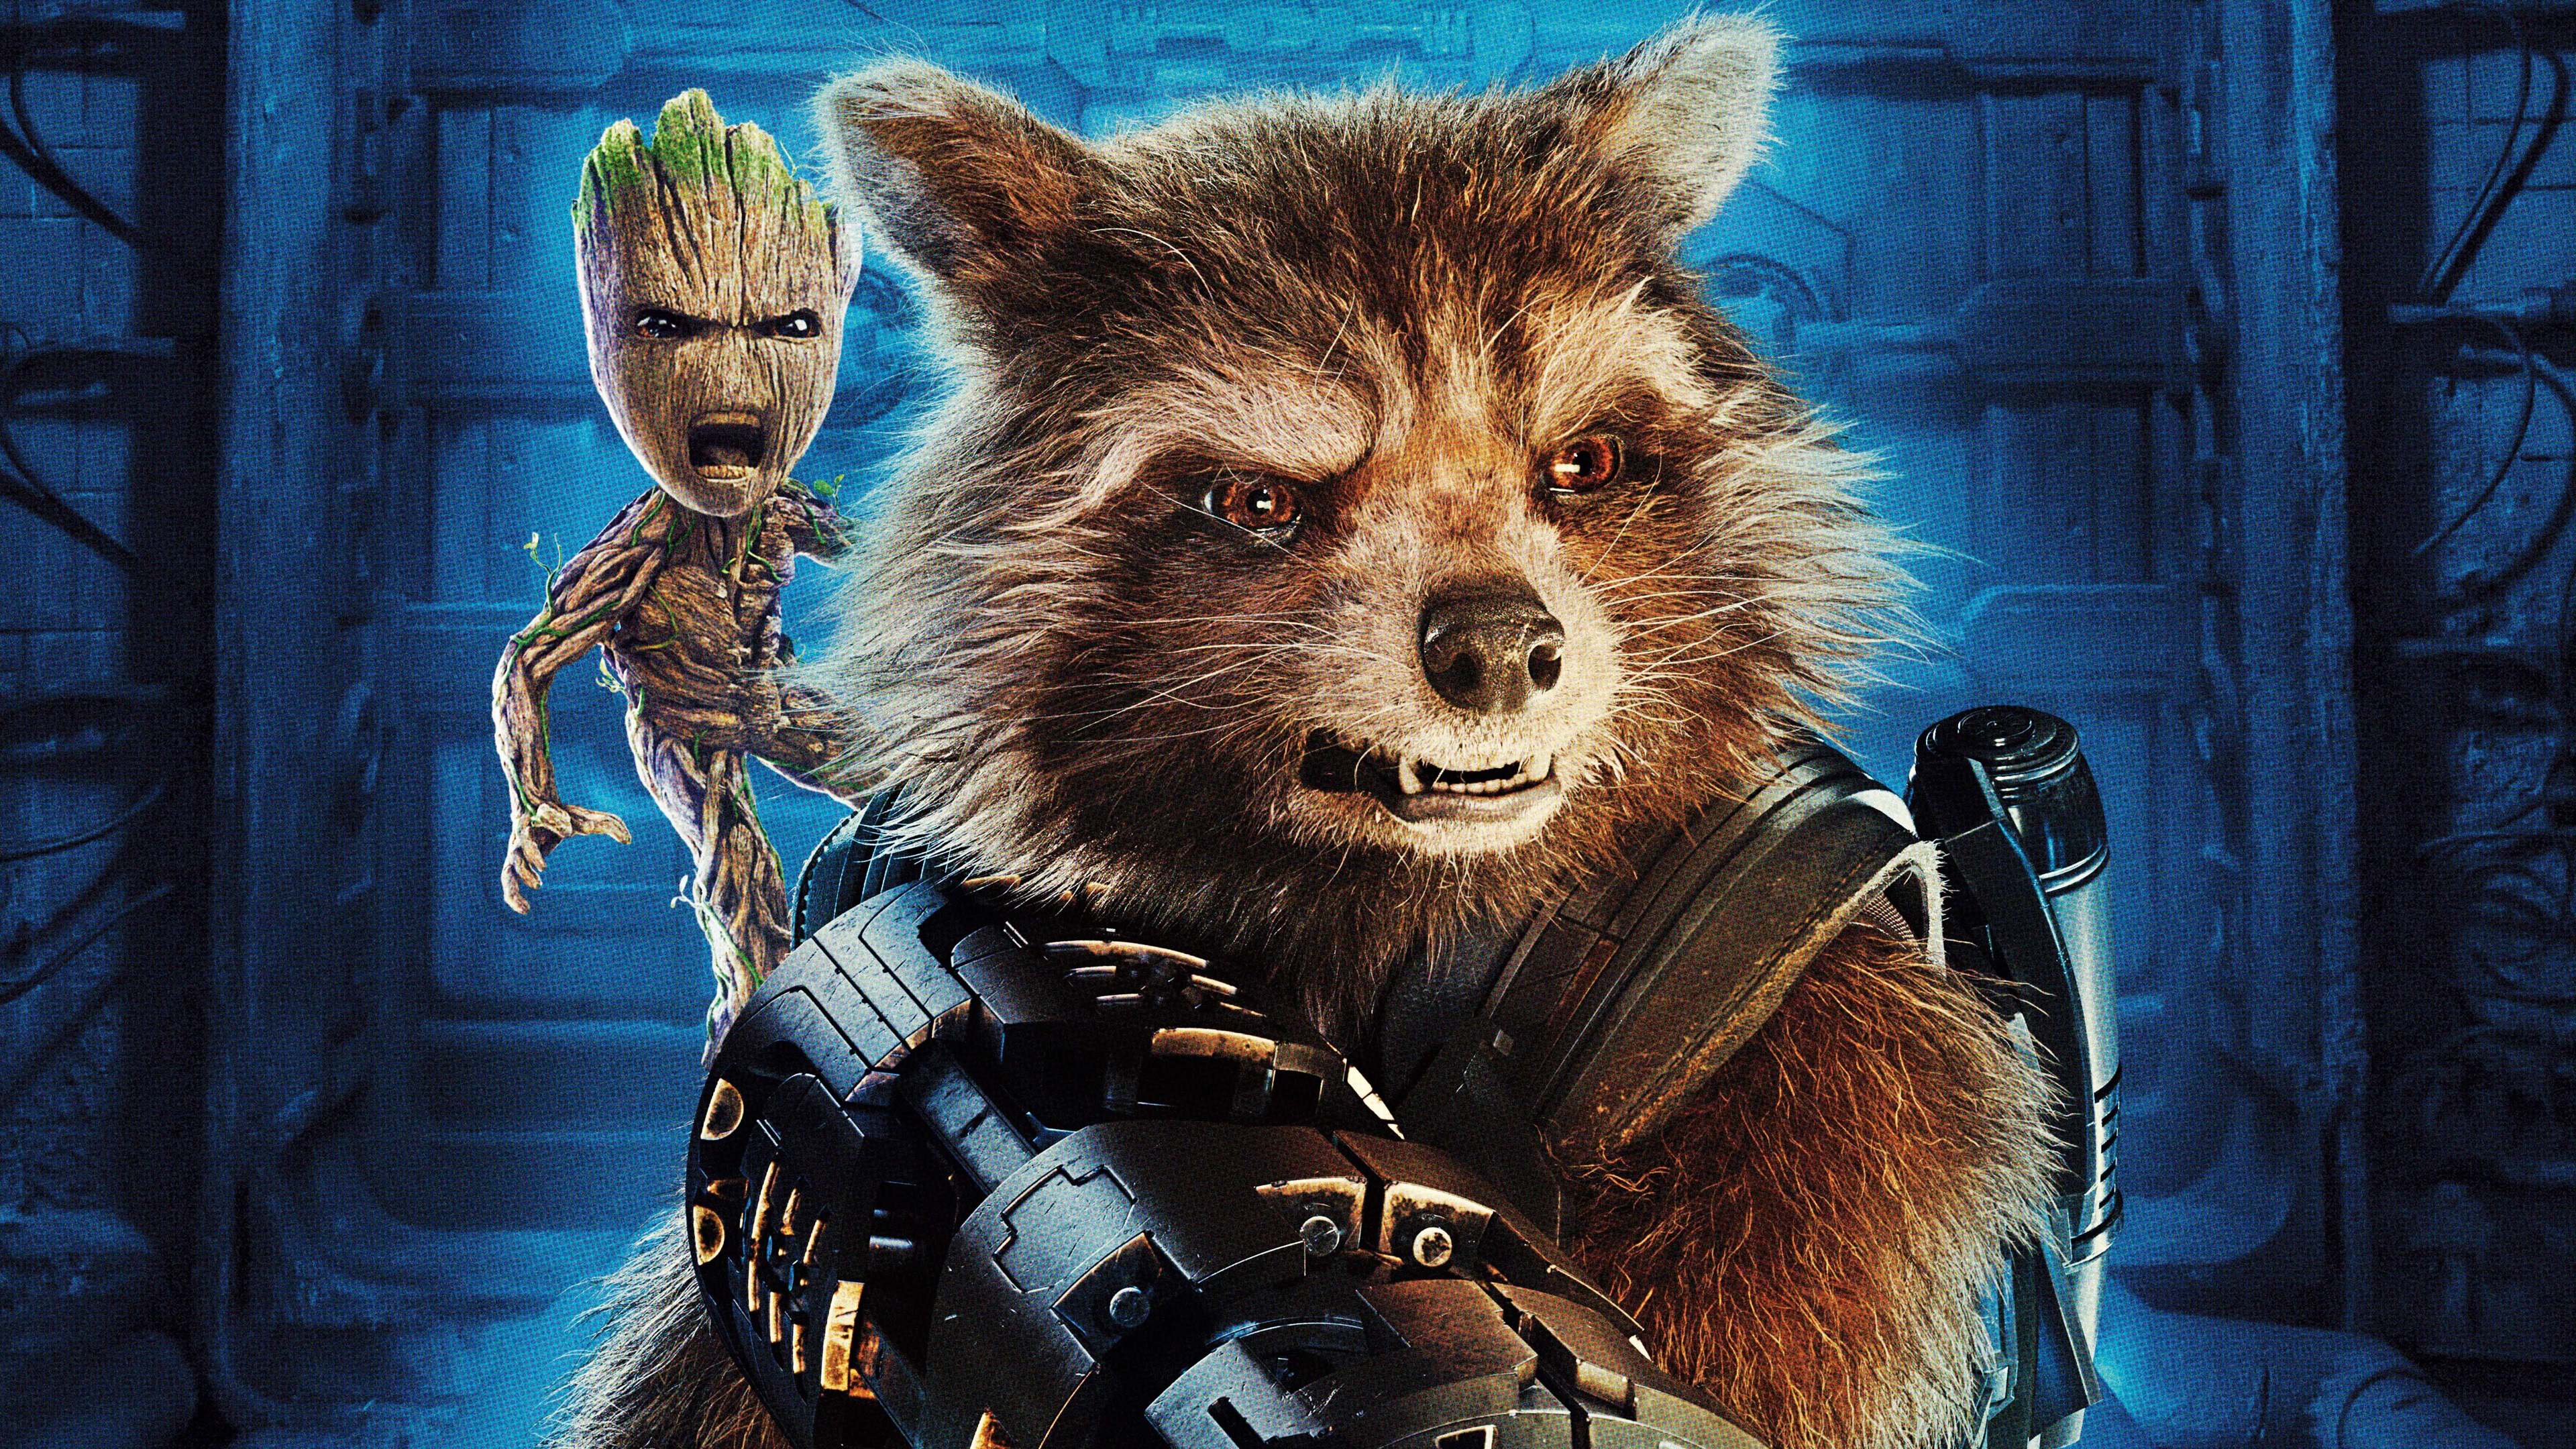 Wallpaper Rocket Baby Groot Guardians Of The Galaxy 2 3840x2160